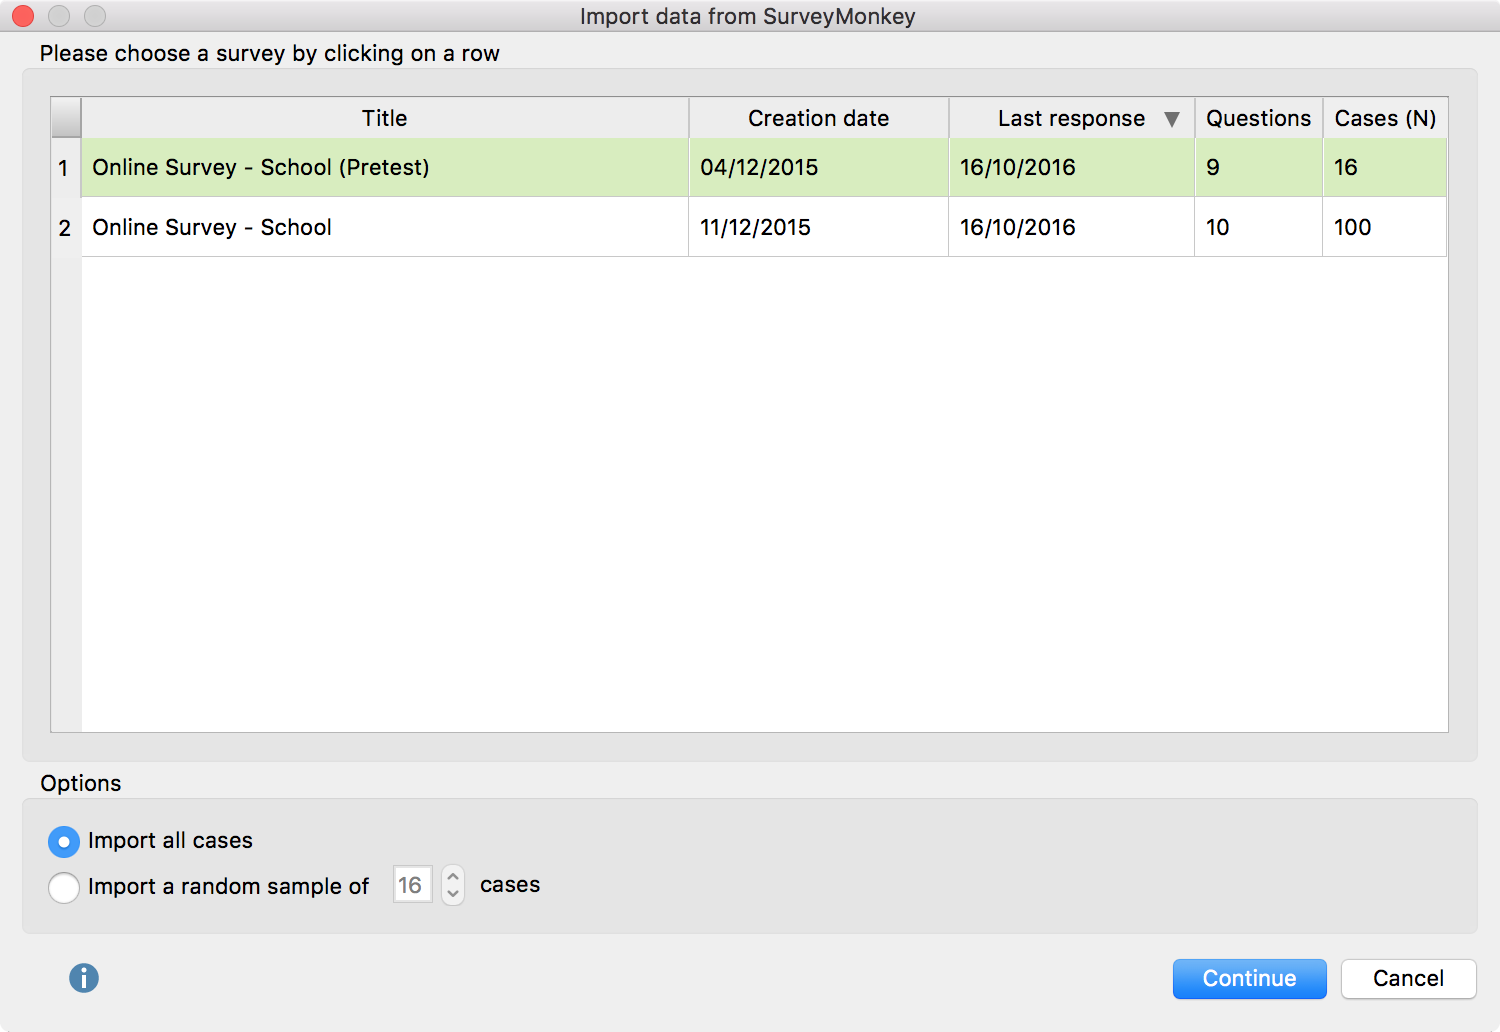 This dialog window allows you to select a survey you want to import